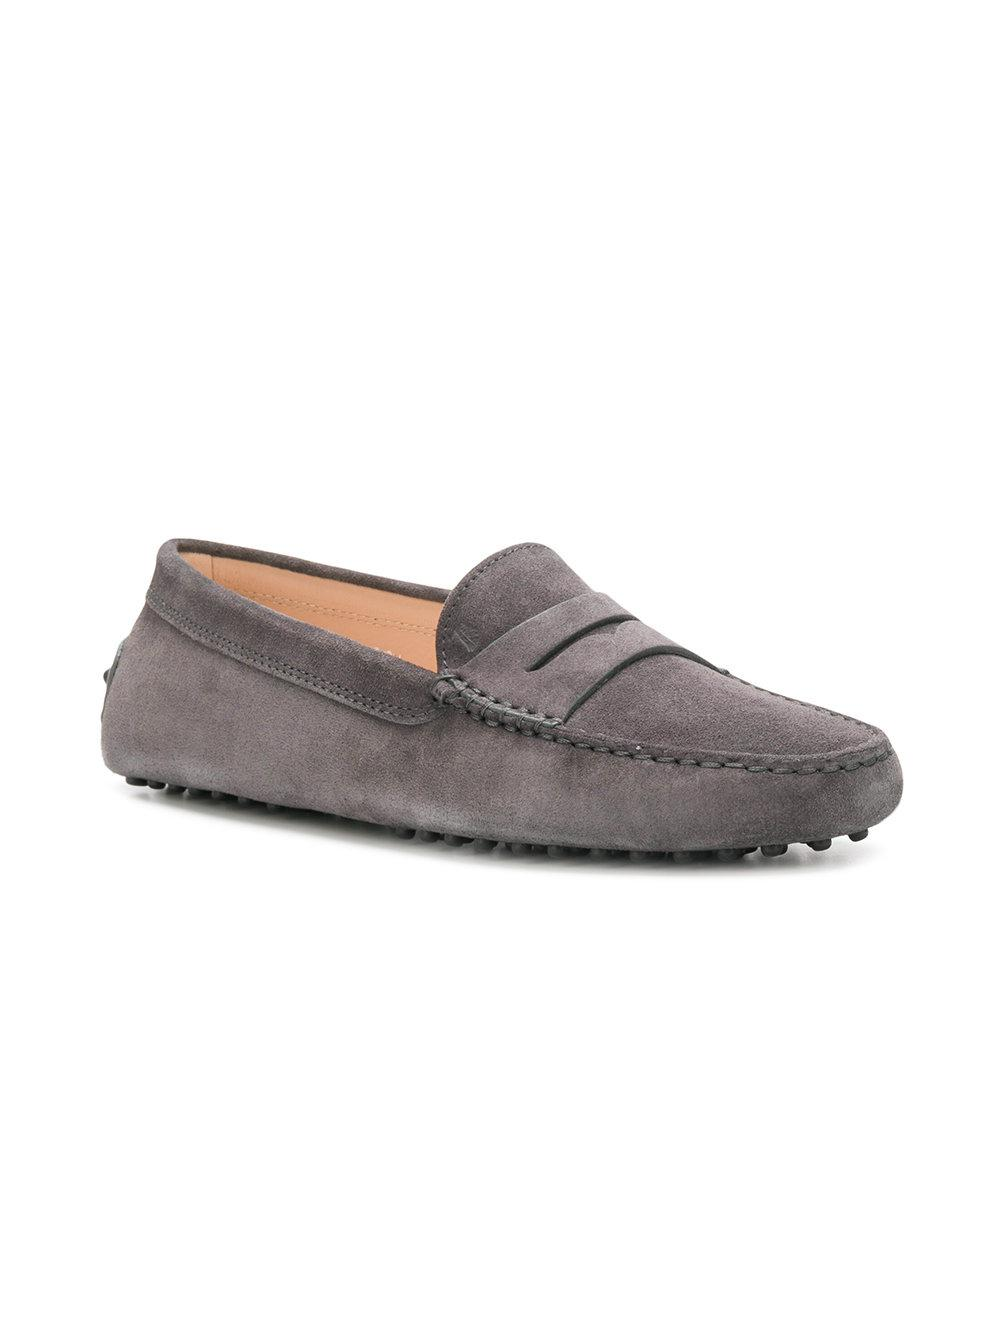 c3bcf017805 Tod S Slip-on Loafers in Gray - Lyst